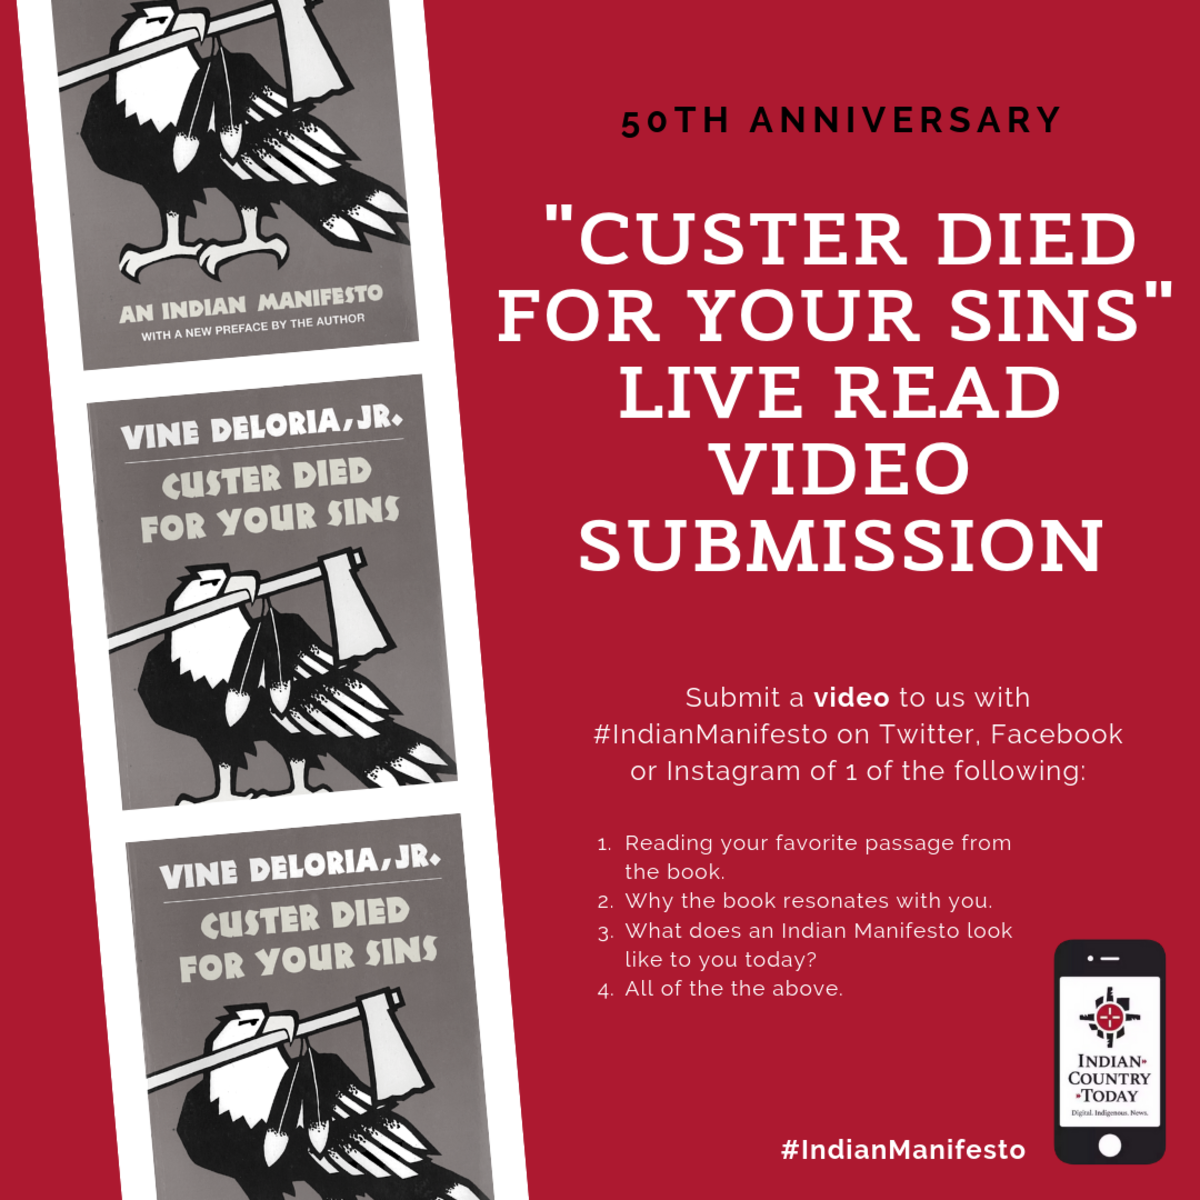 50th anniversary of _custer died for your sins'